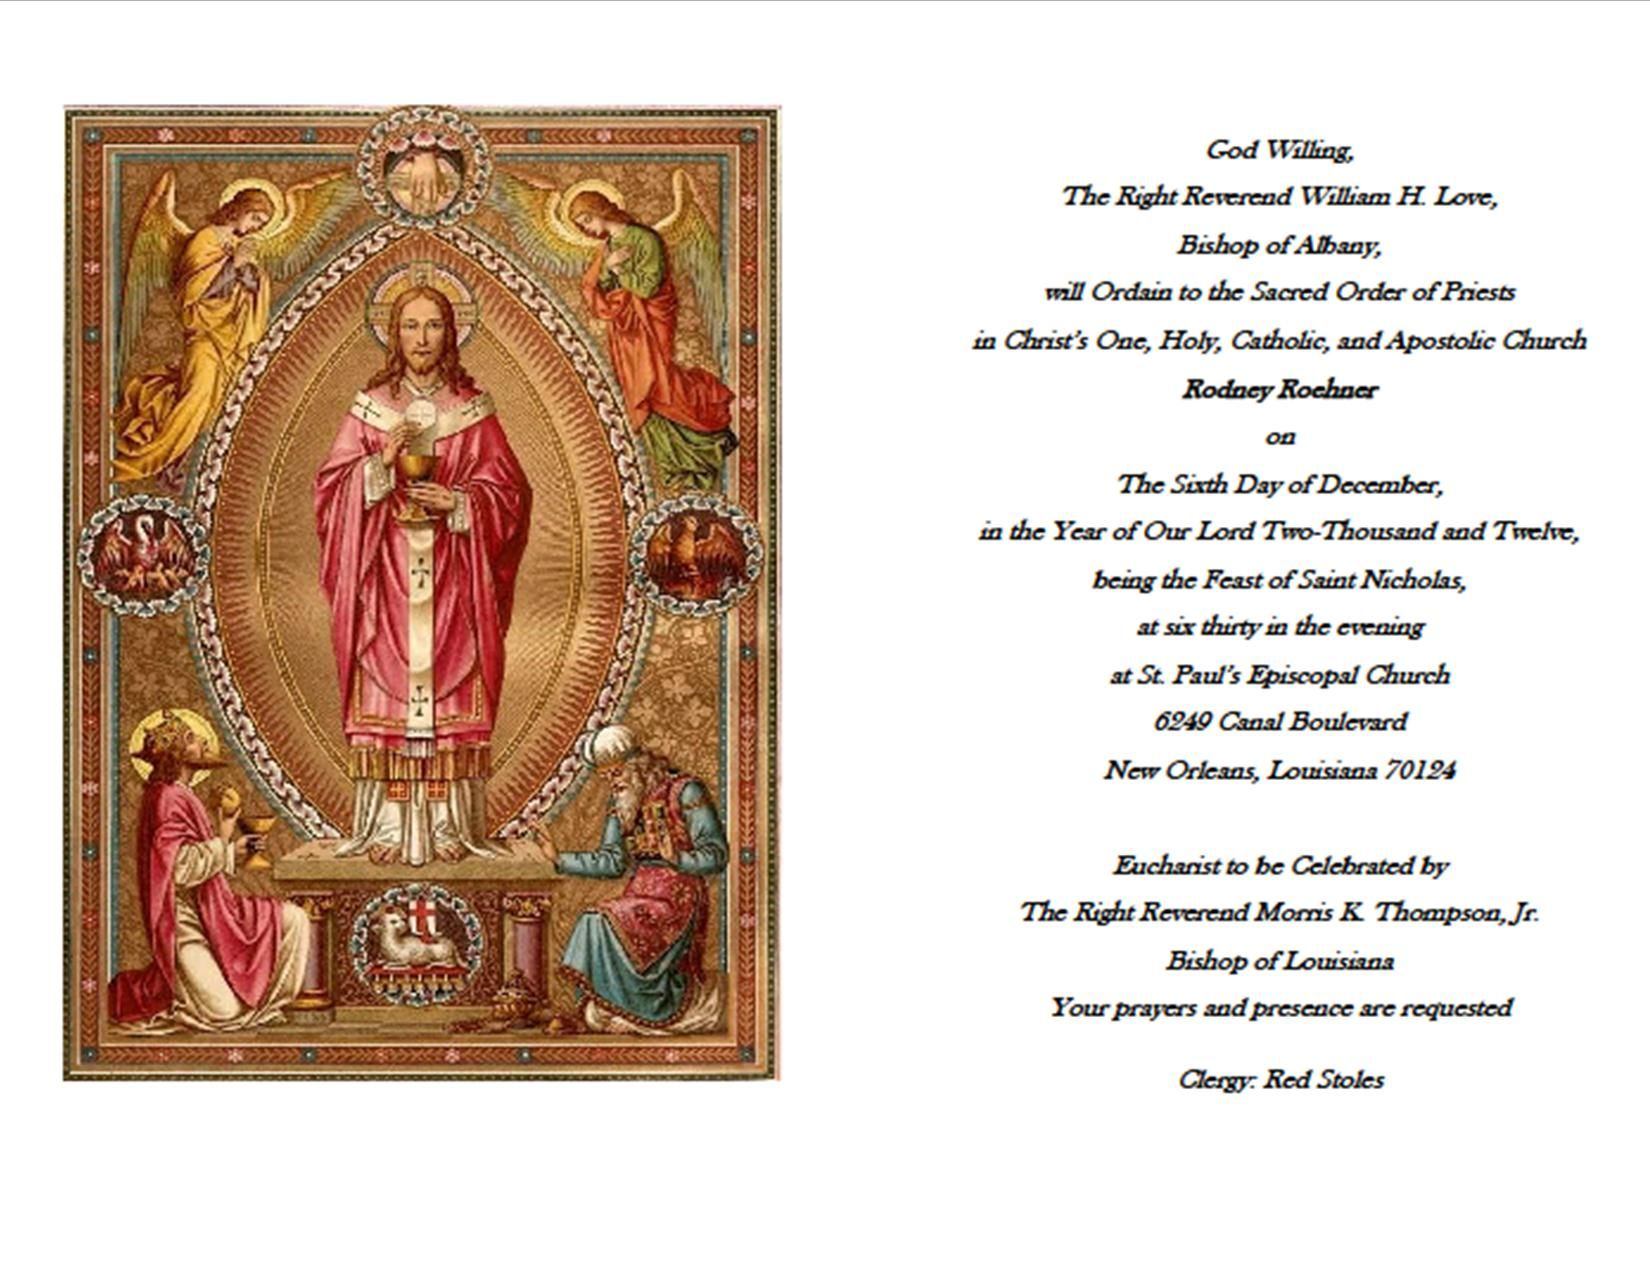 diaconate ordination Deacon Rodney Roehner Ordination Invitation